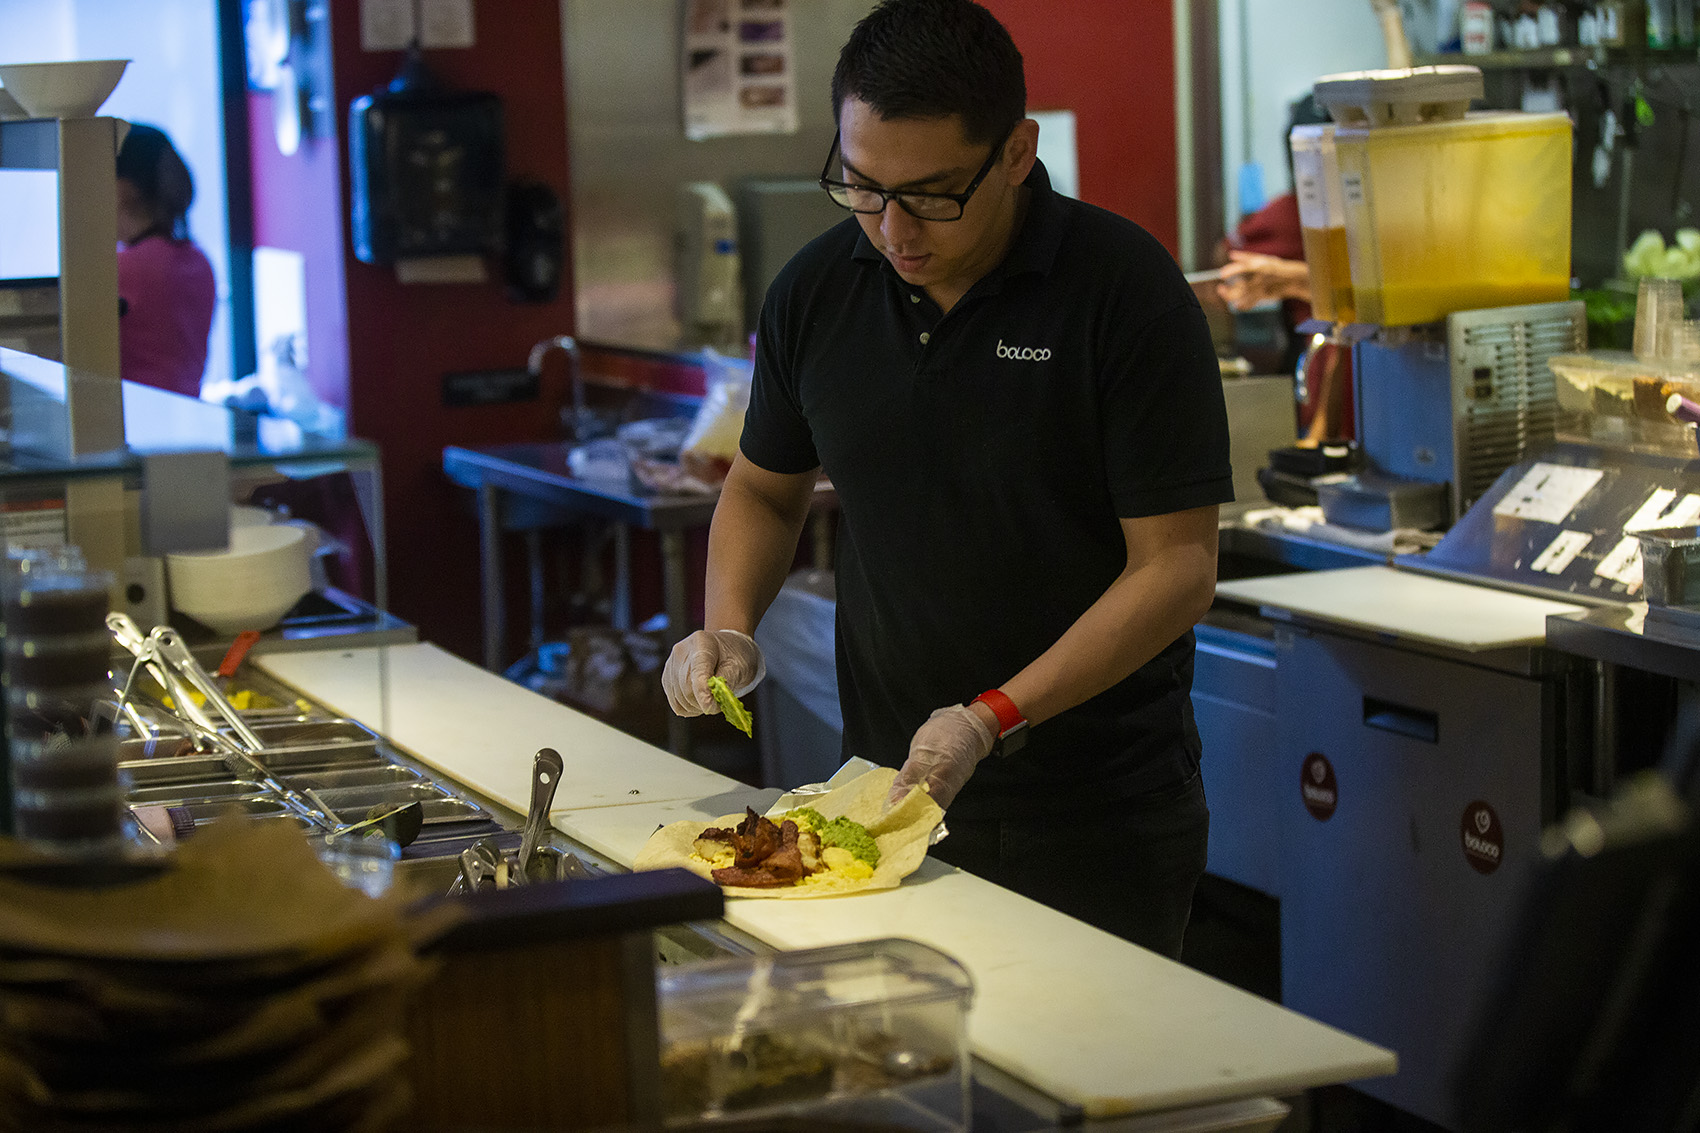 """Boloco manager Erick Guitierrez slaps some guacamole onto a breakfast burrito he is making for a customer using the """"Food For All"""" app. (Jesse Costa/WBUR)"""